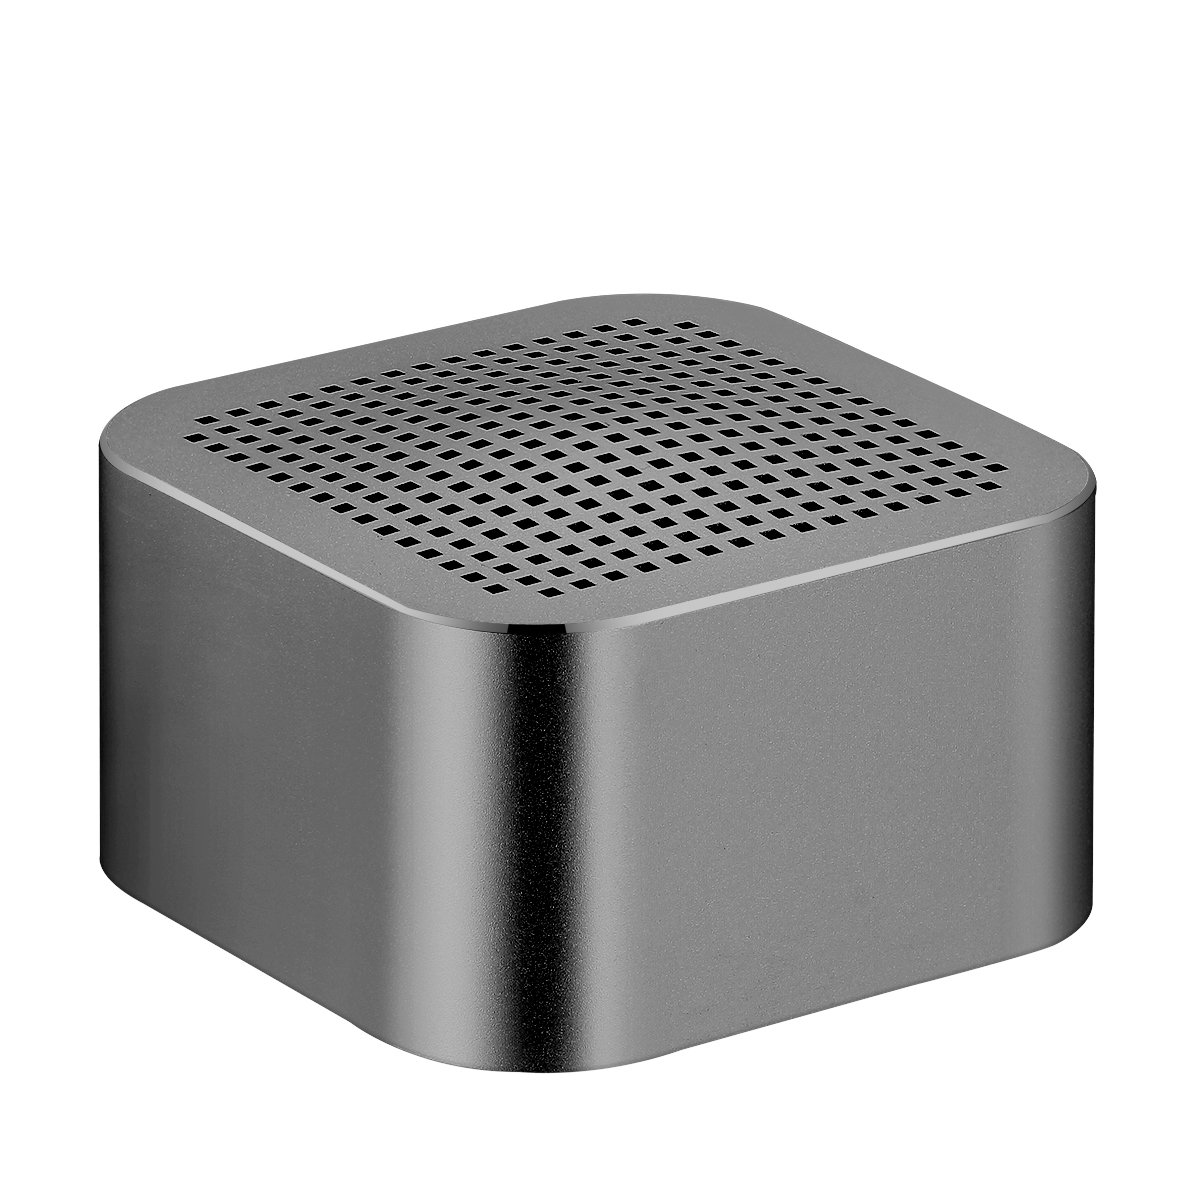 SOONHUA MINI Bluetooth Speaker Square Wireless Bluetooth 4.0 Speaker Super Bass Stereo Sound Handsfree Call LED Indicator Built-in Mic Rechargeable Battery for Home Car Outdoor (Black)